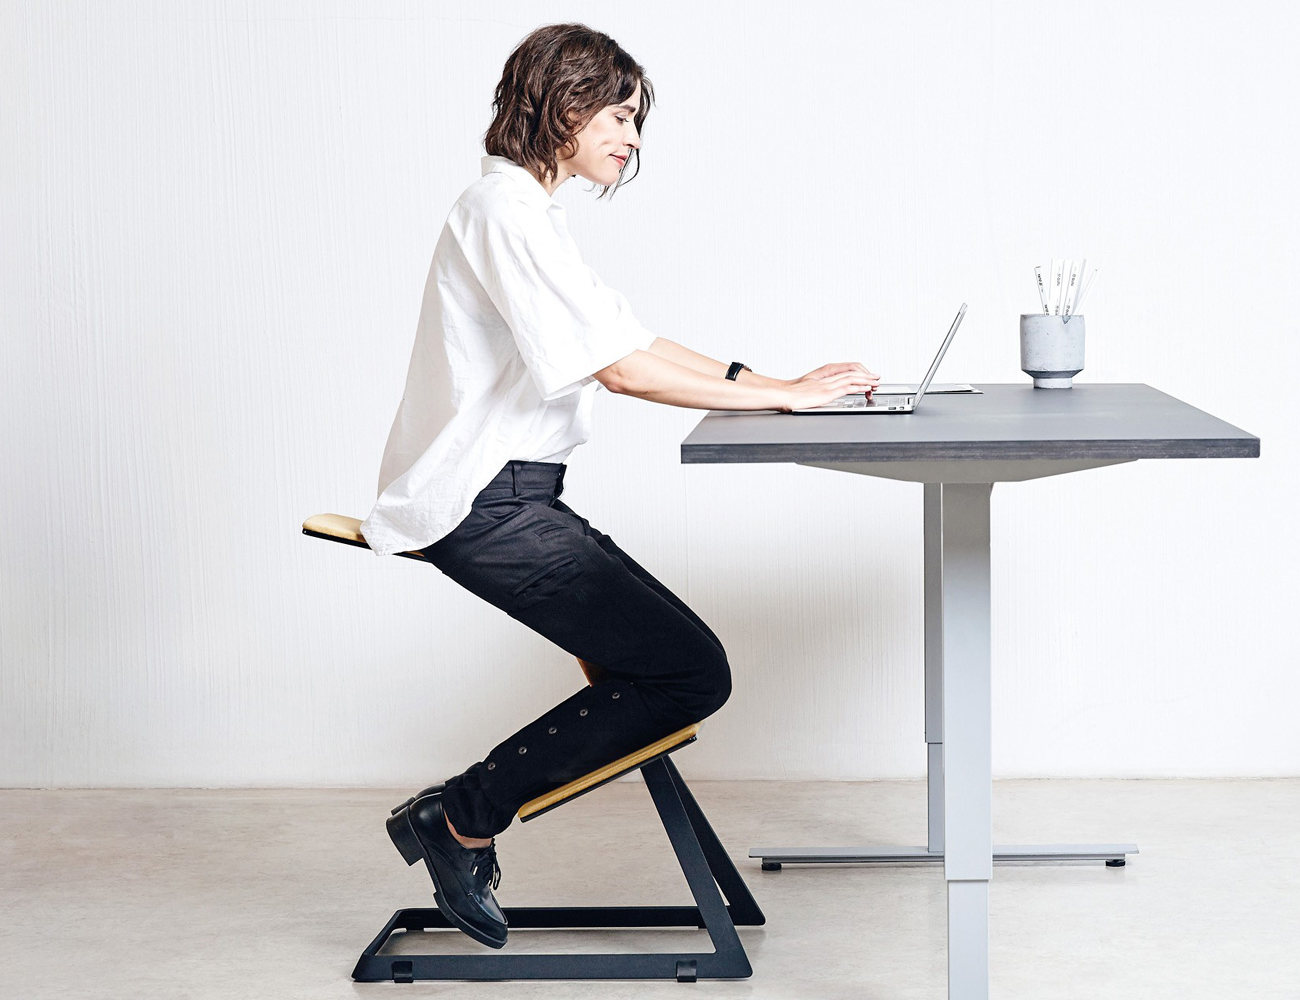 Ergonomic Work Chairs W Chair The Truly Ergonomic Desk Chair Gadget Flow